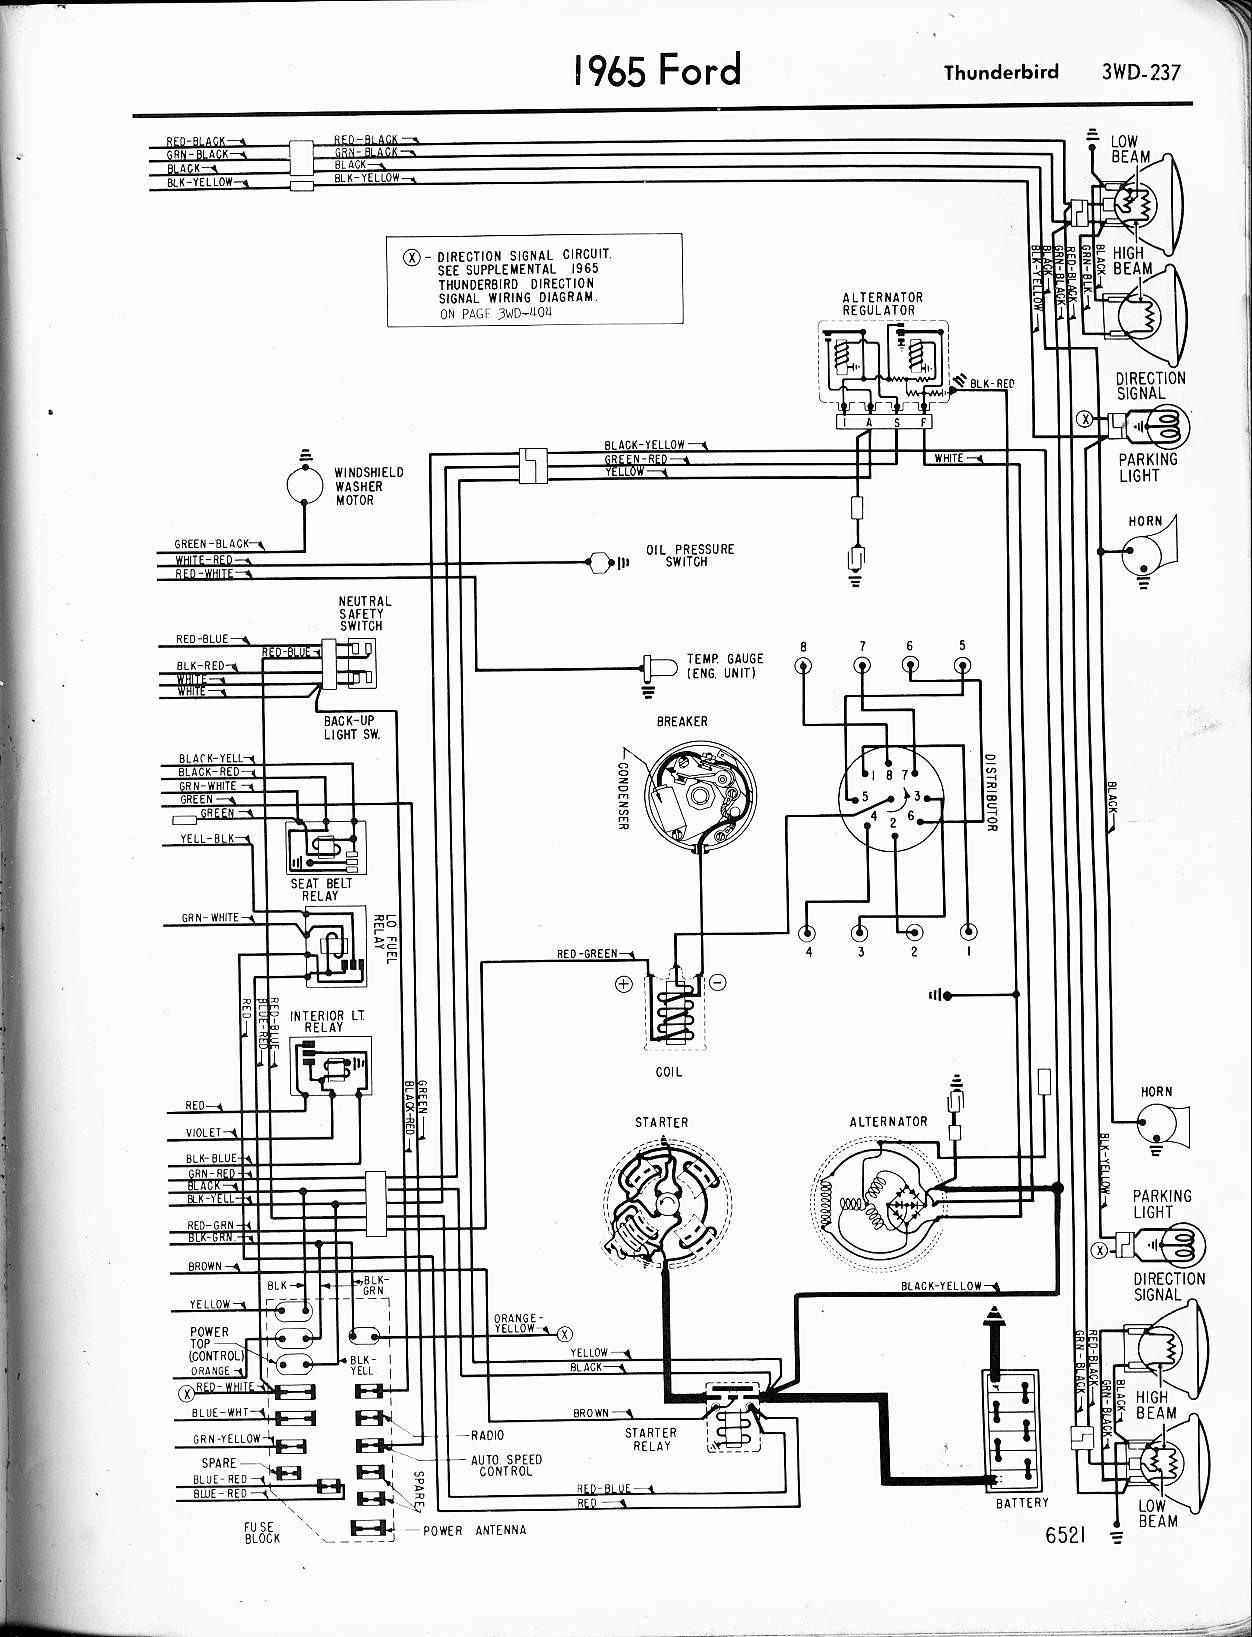 hight resolution of 1977 ford ltd wiring diagram wiring library 1979 ford thunderbird wiring diagram example electrical wiring rh